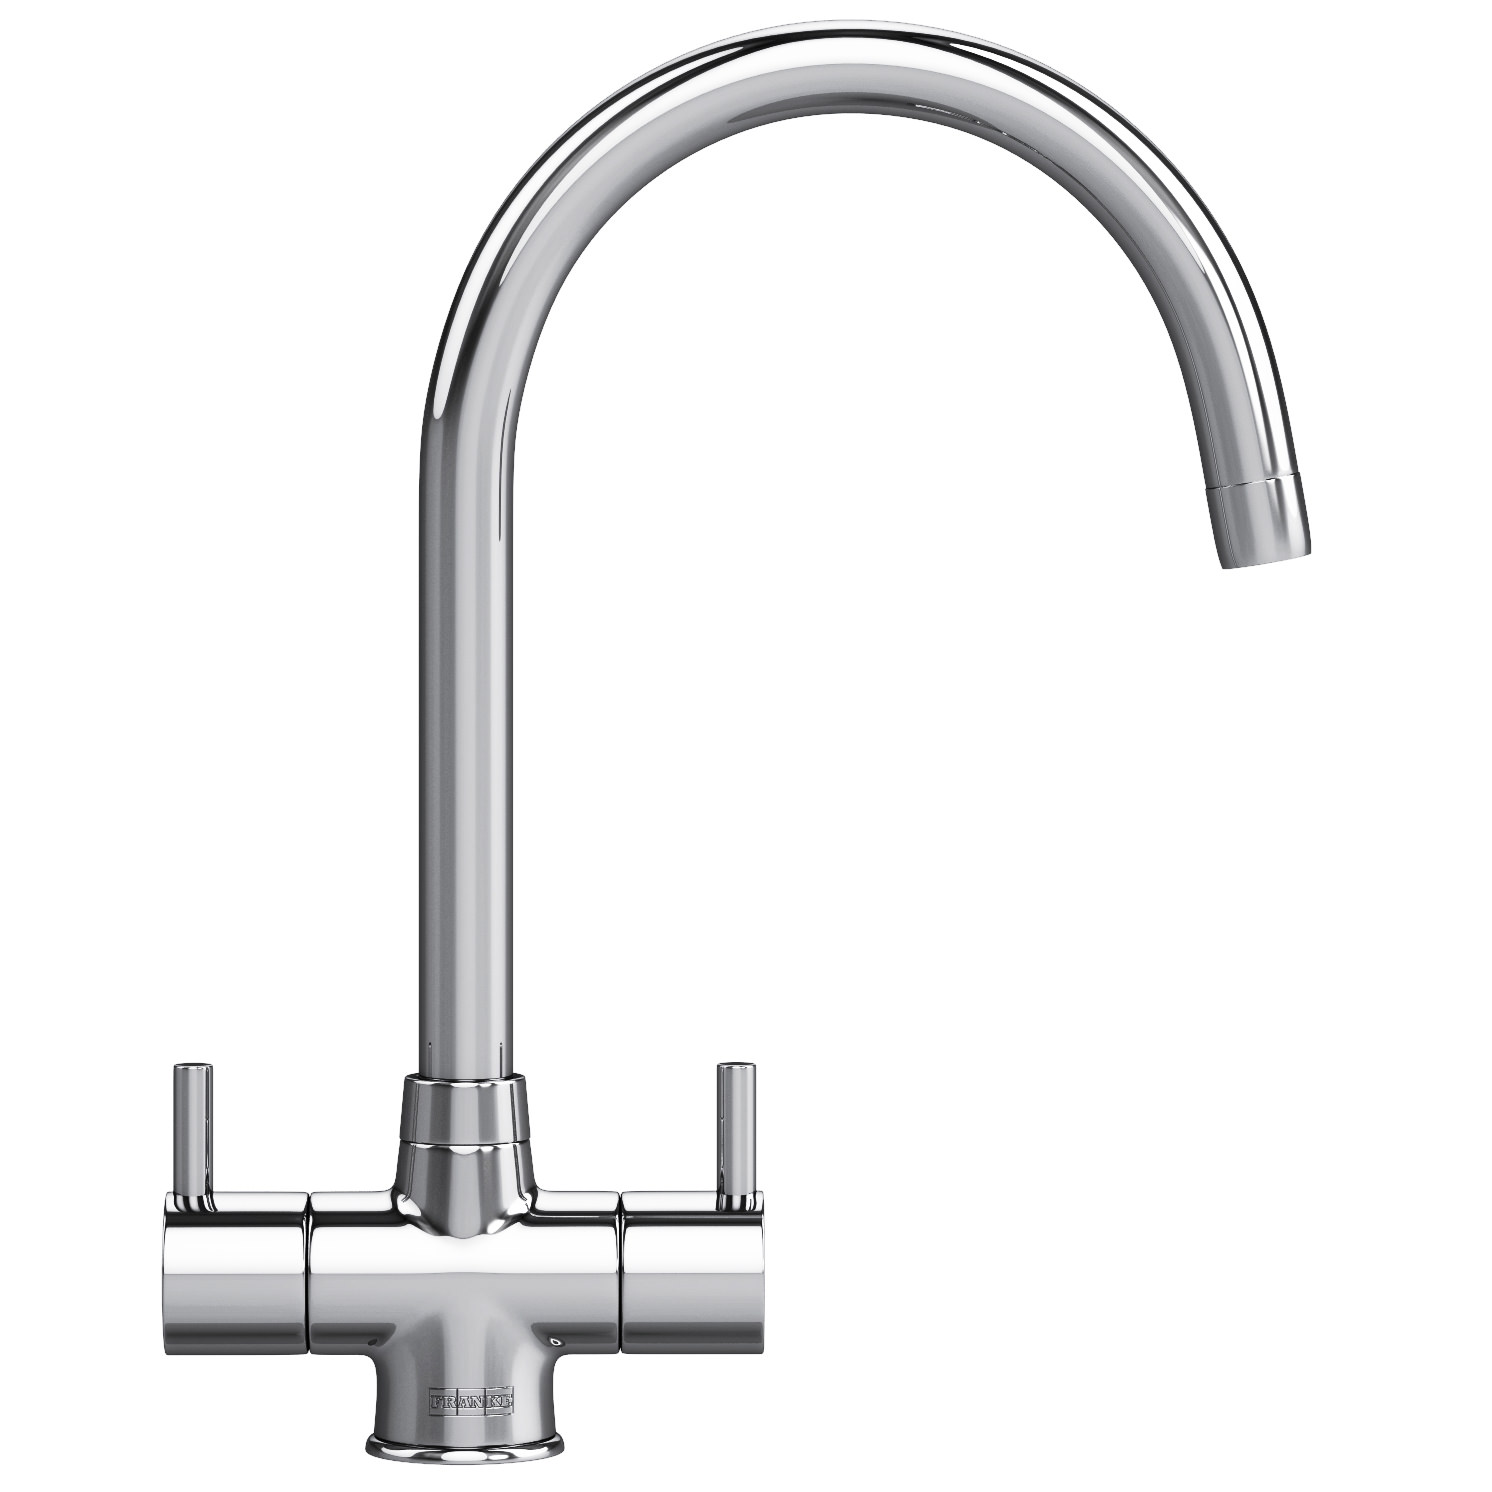 Franke Kitchen Sinks : Franke Athena Kitchen Sink Mixer Tap Chrome - 115.0311.211